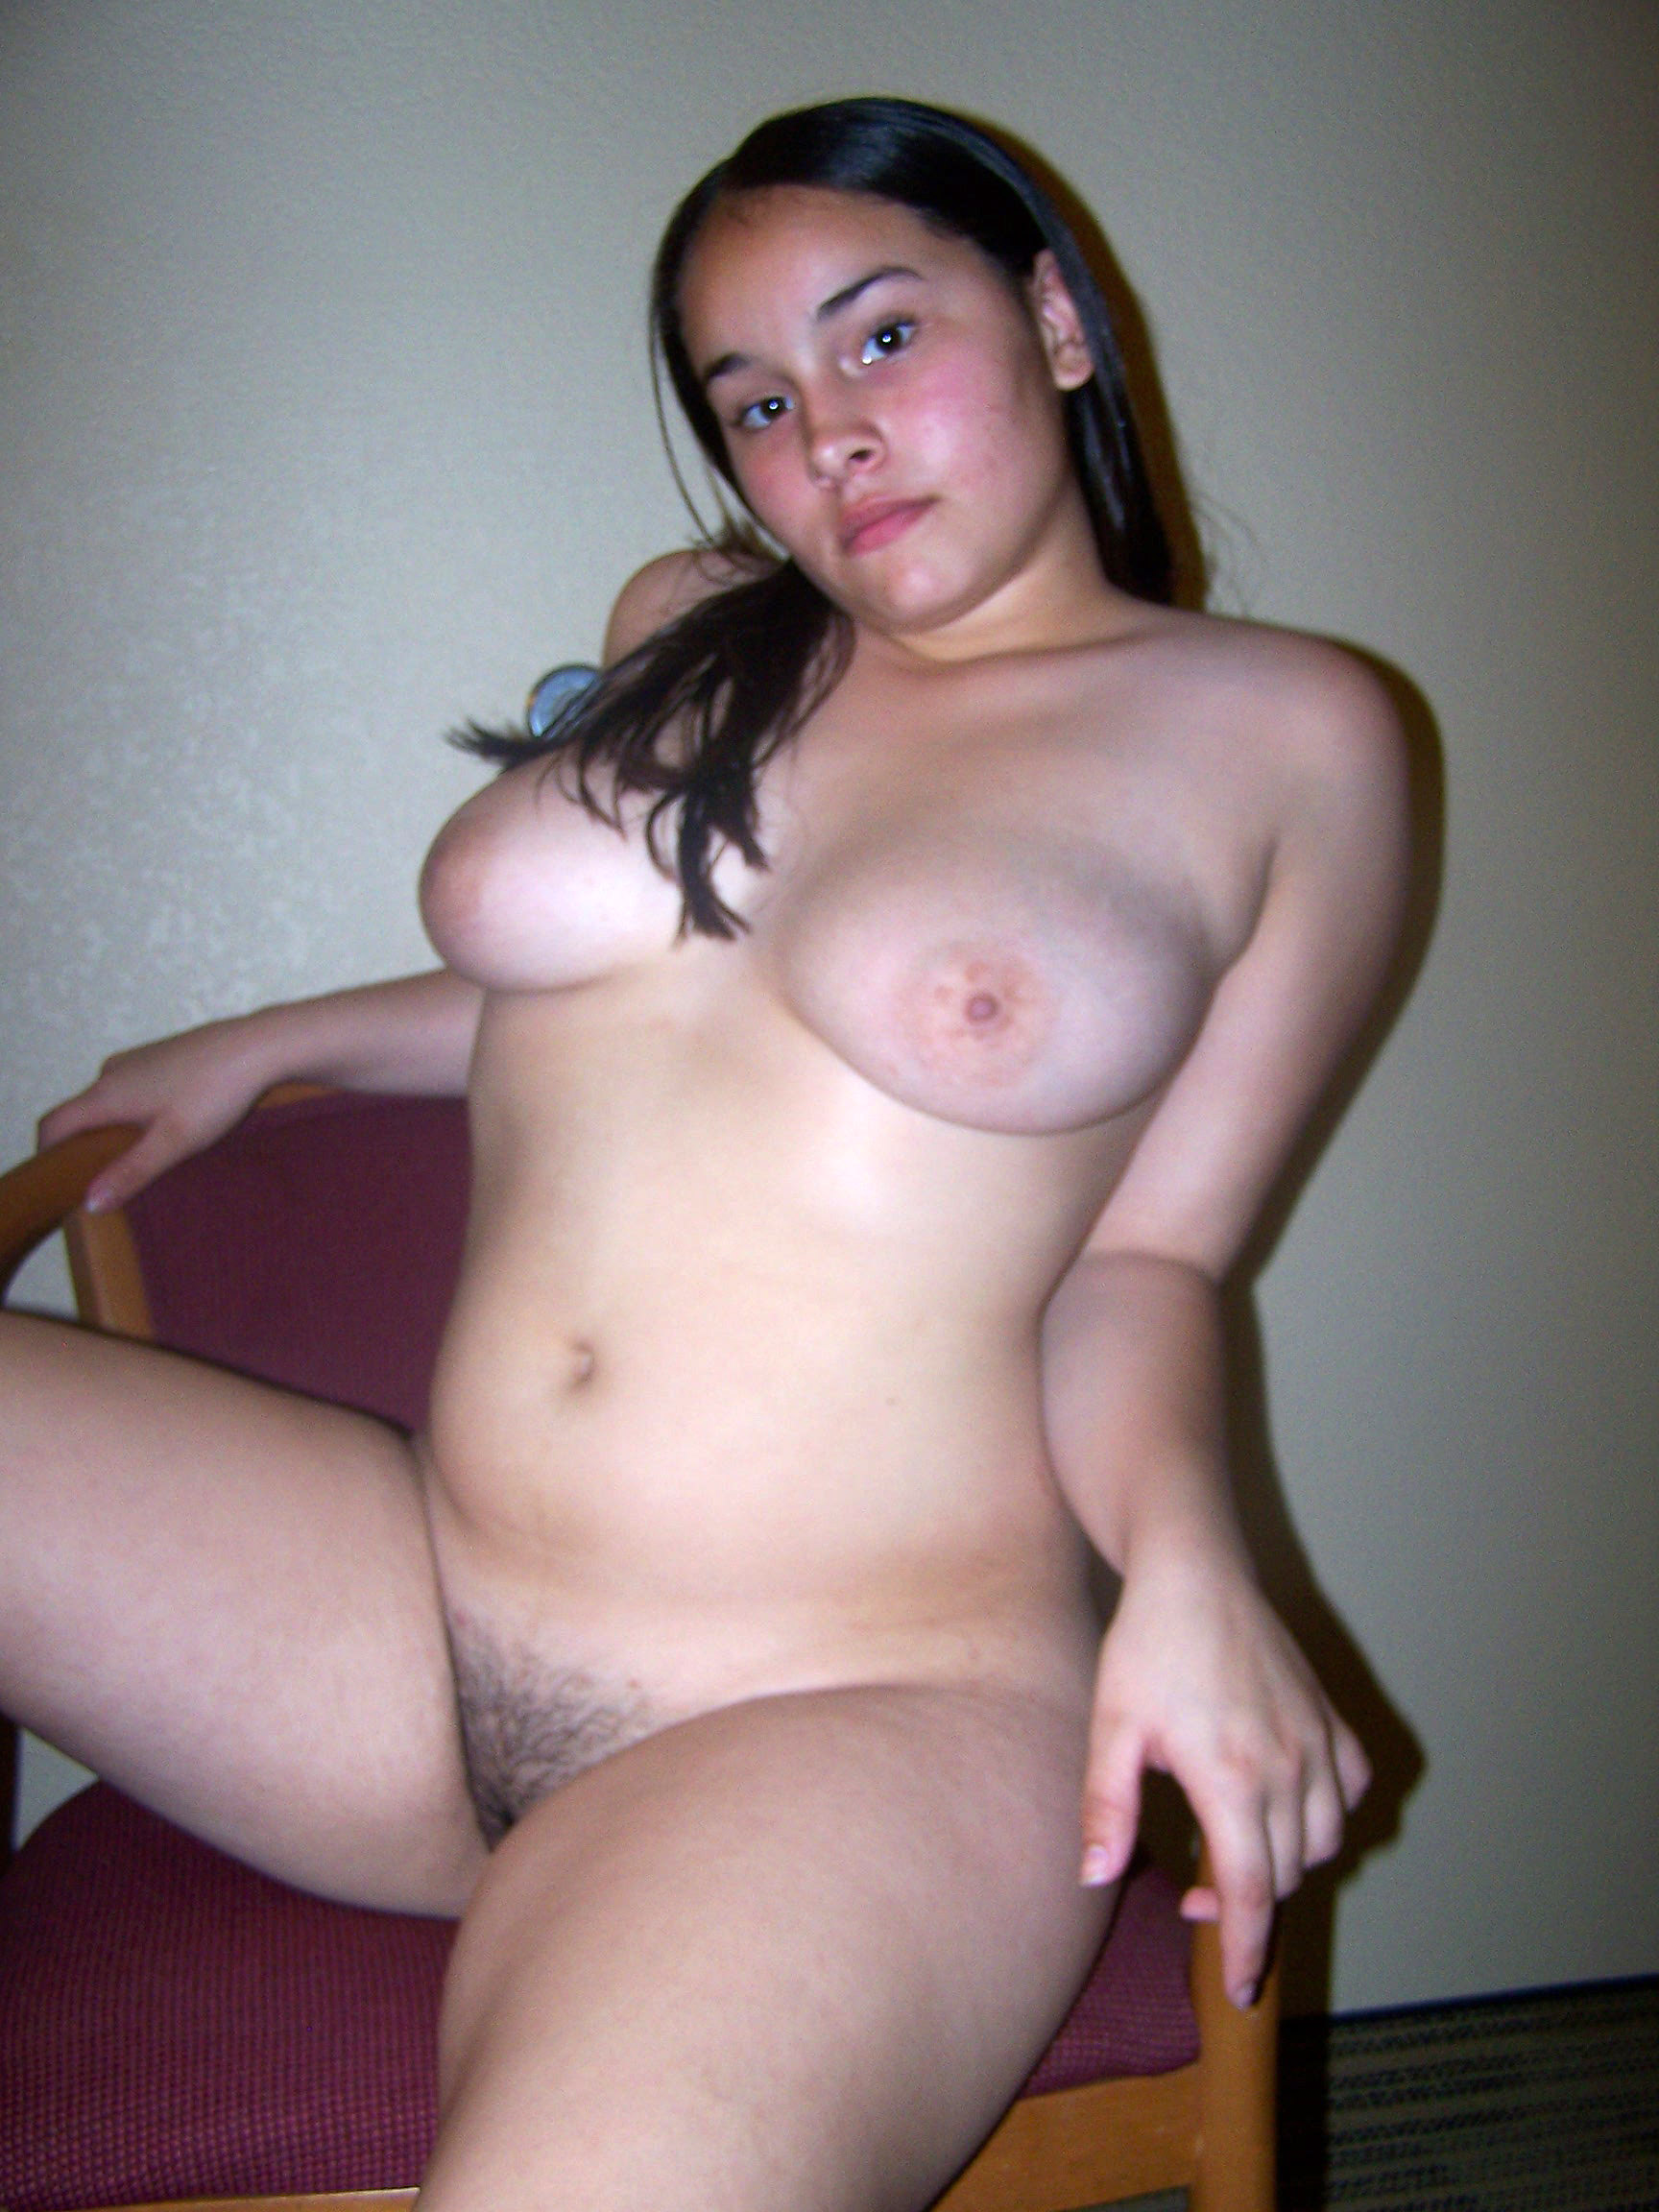 Teen amateur nude thick — photo 5